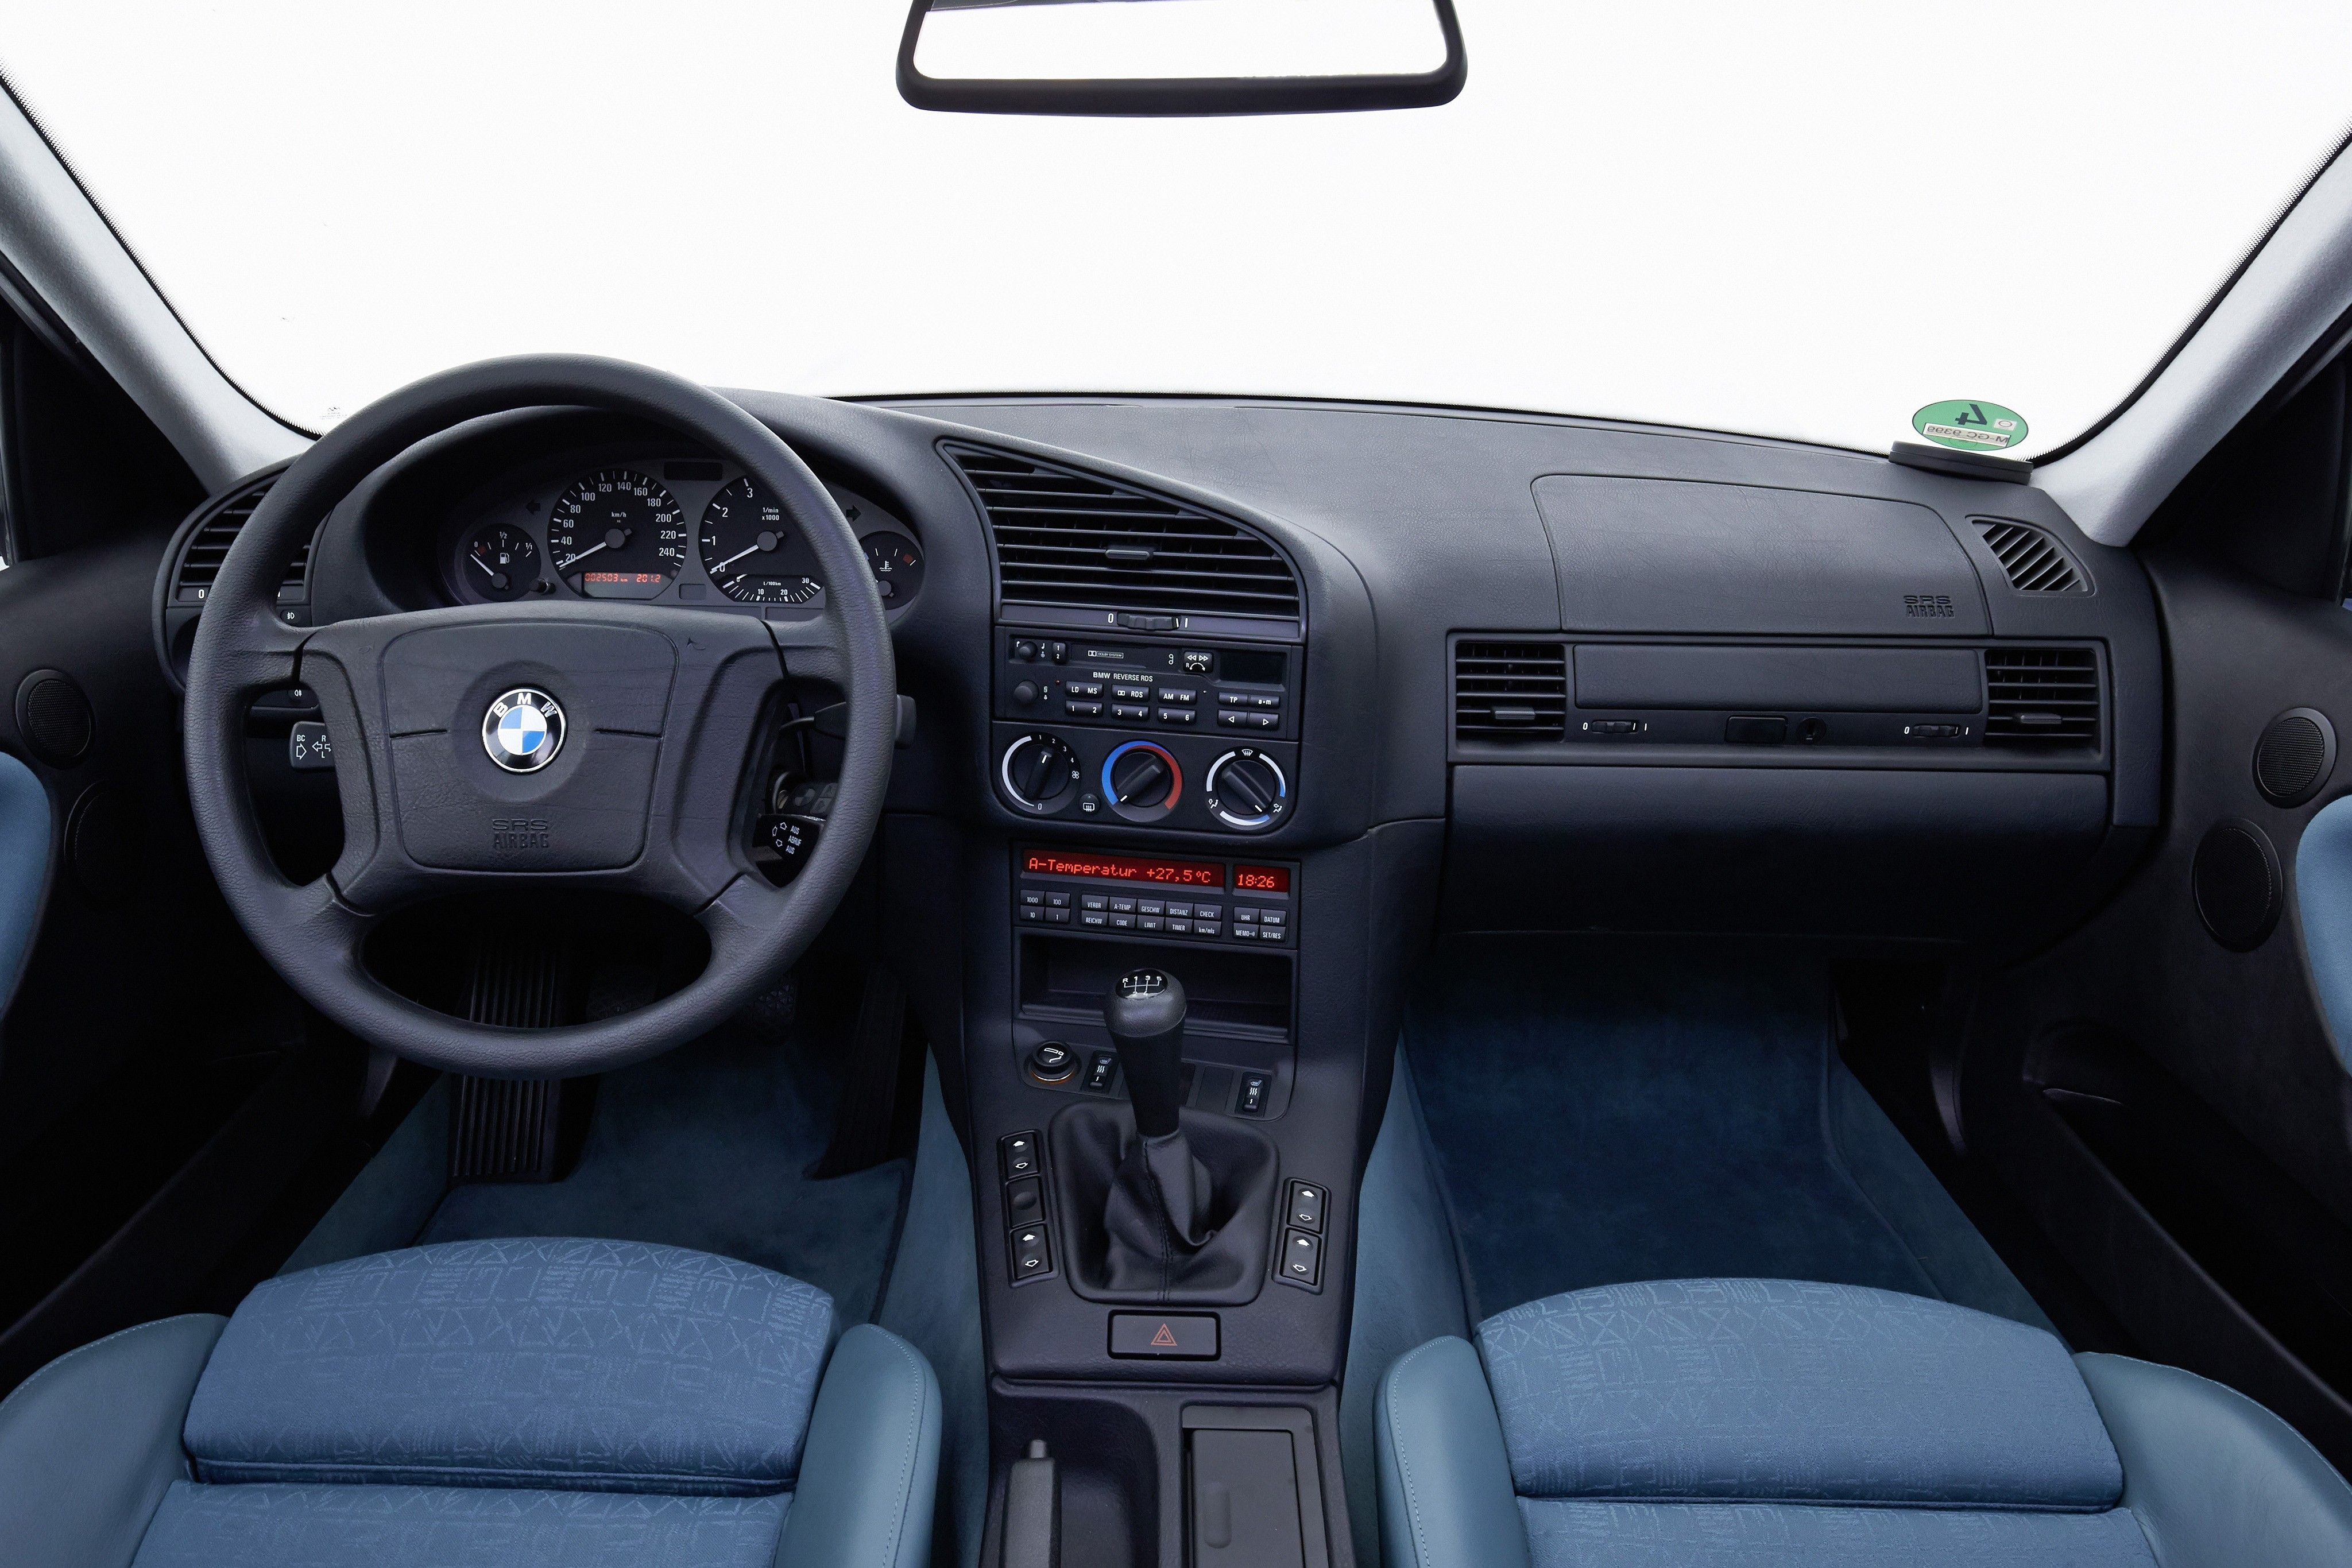 Pin by Khaled EL Felawy on Bmw interrer | Bmw e36 touring ...